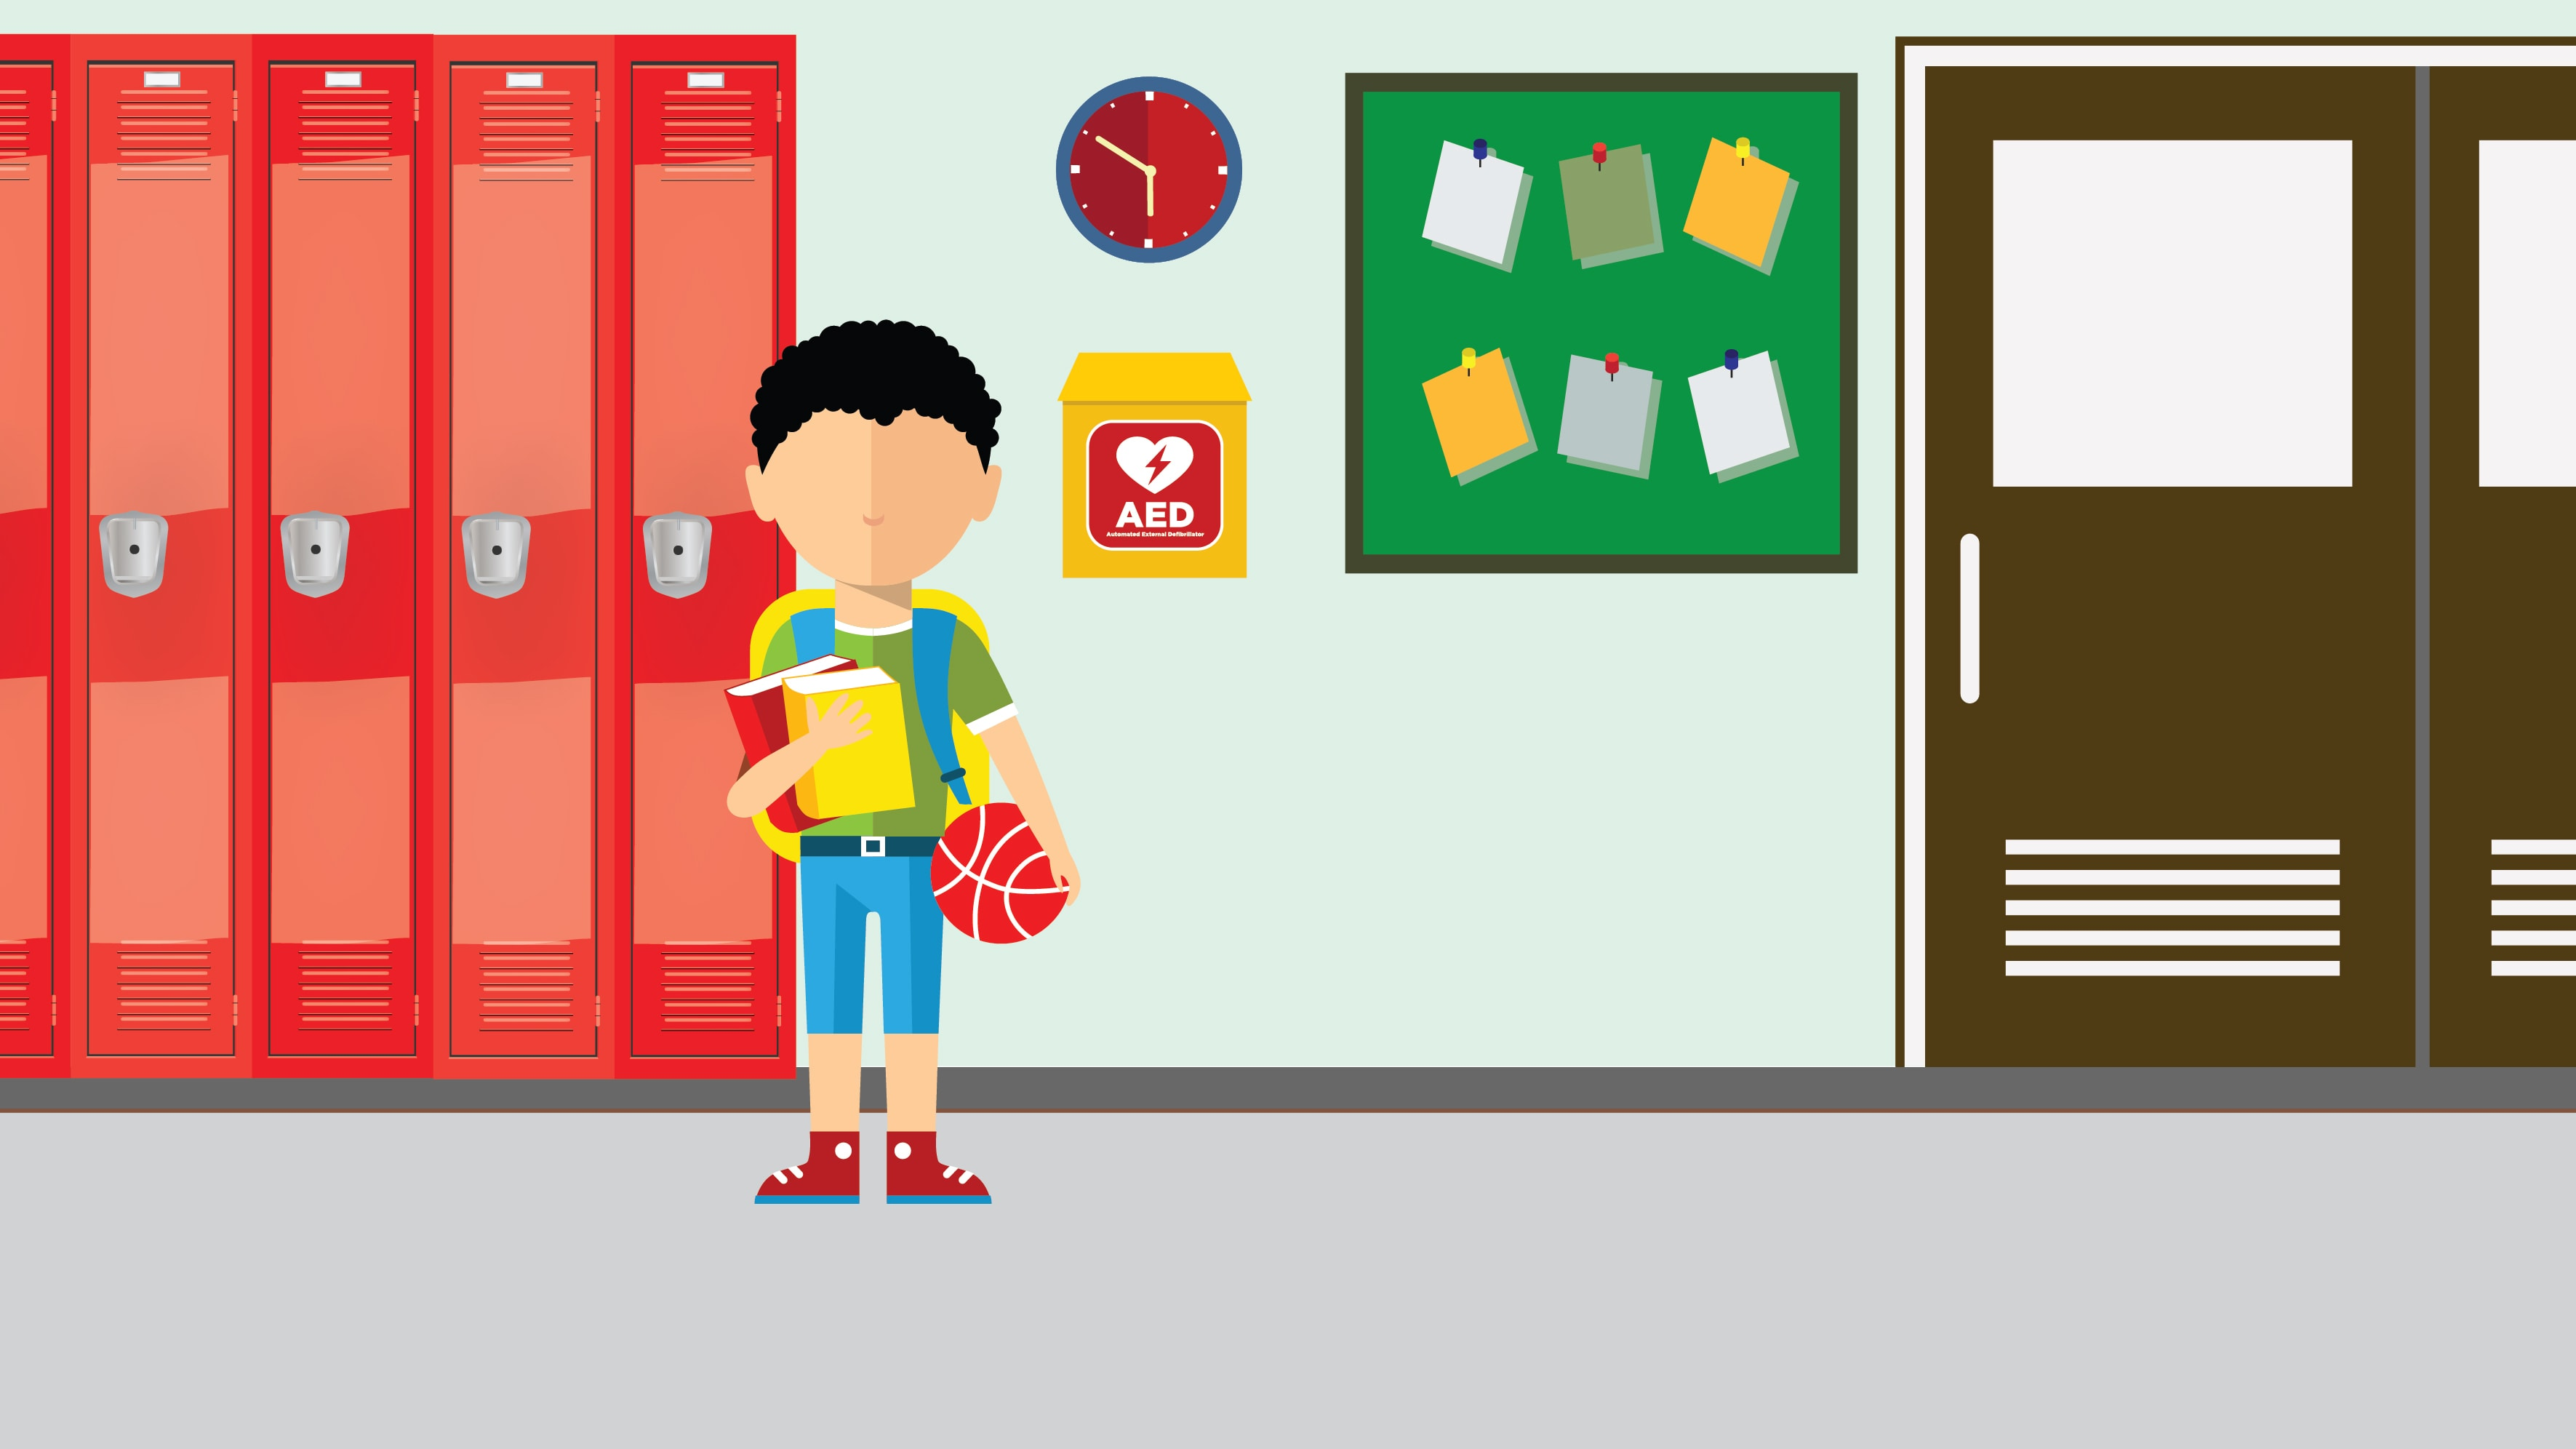 Illustration of student standing next to an automated external defibrillators (AED)